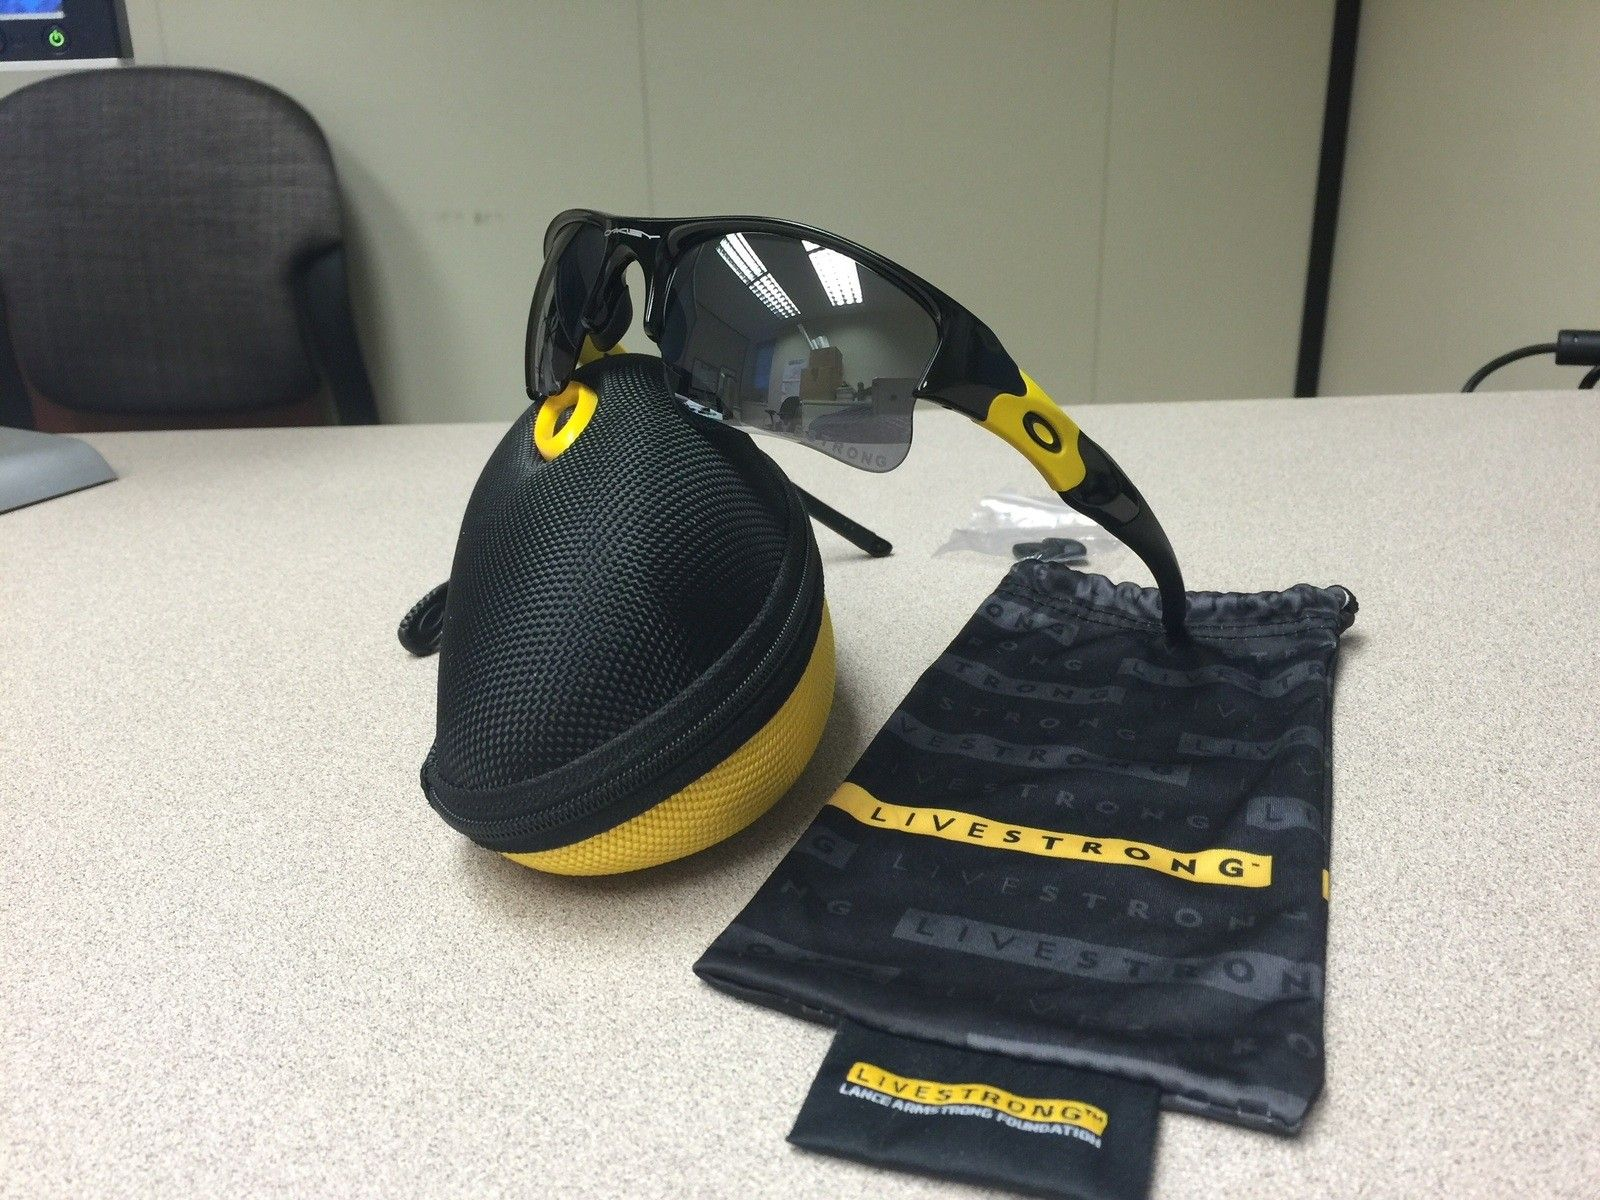 Or Trade - Livestrong Flak Jacket (complete) and SI Flak Jacket (frame only) - image.jpg